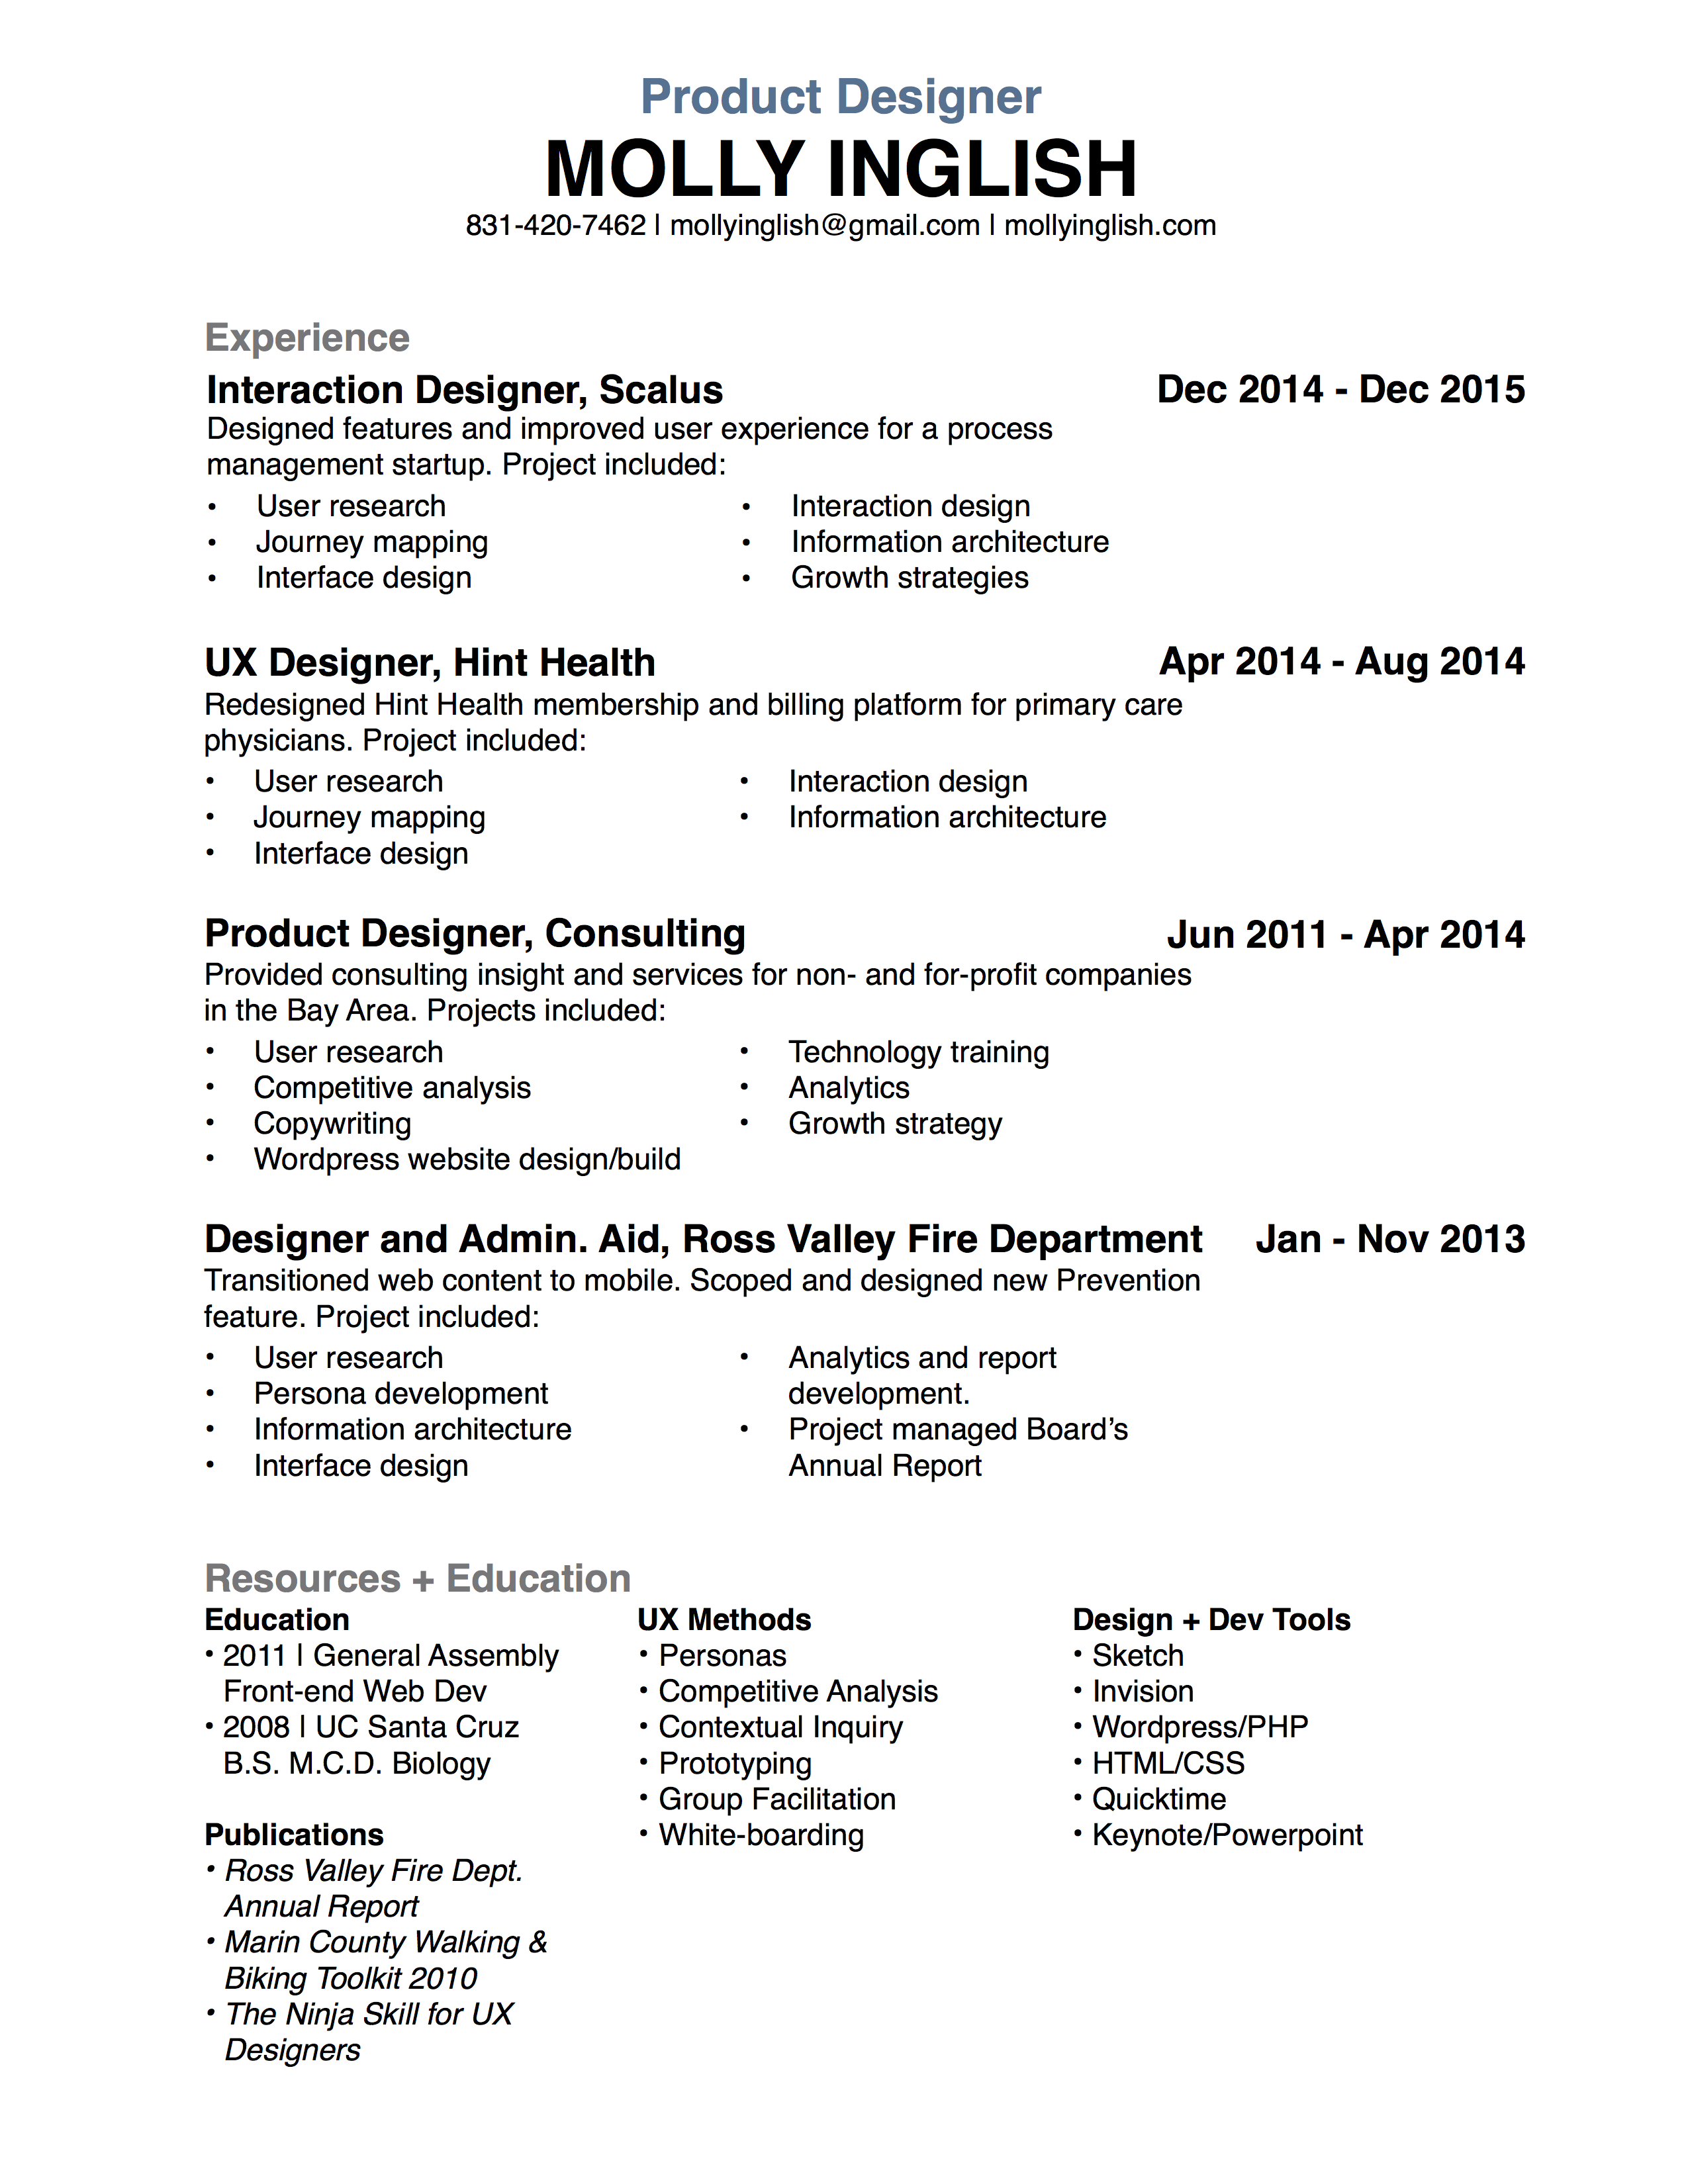 mollyinglishresume2016